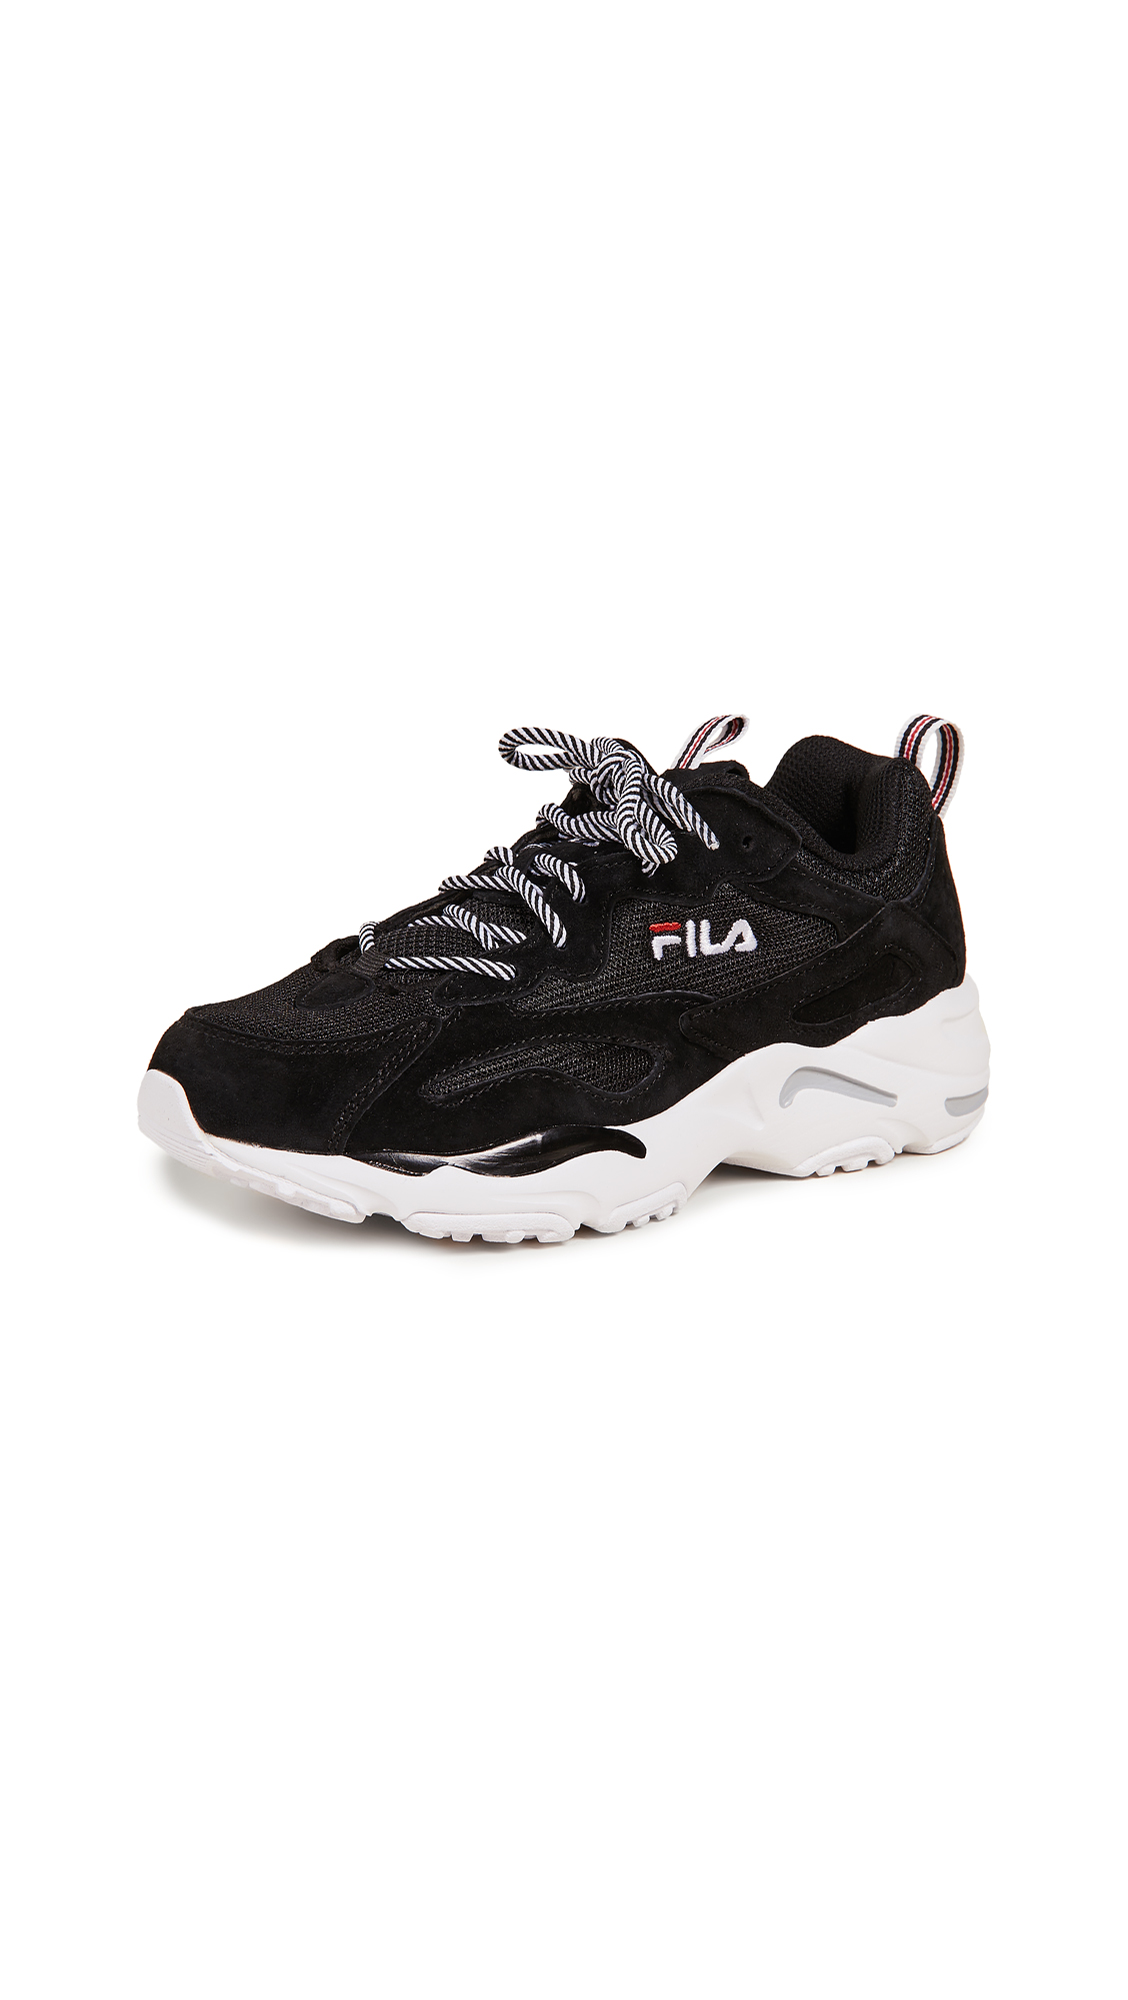 Fila Ray Tracer Sneakers - Black/White/Fila Red